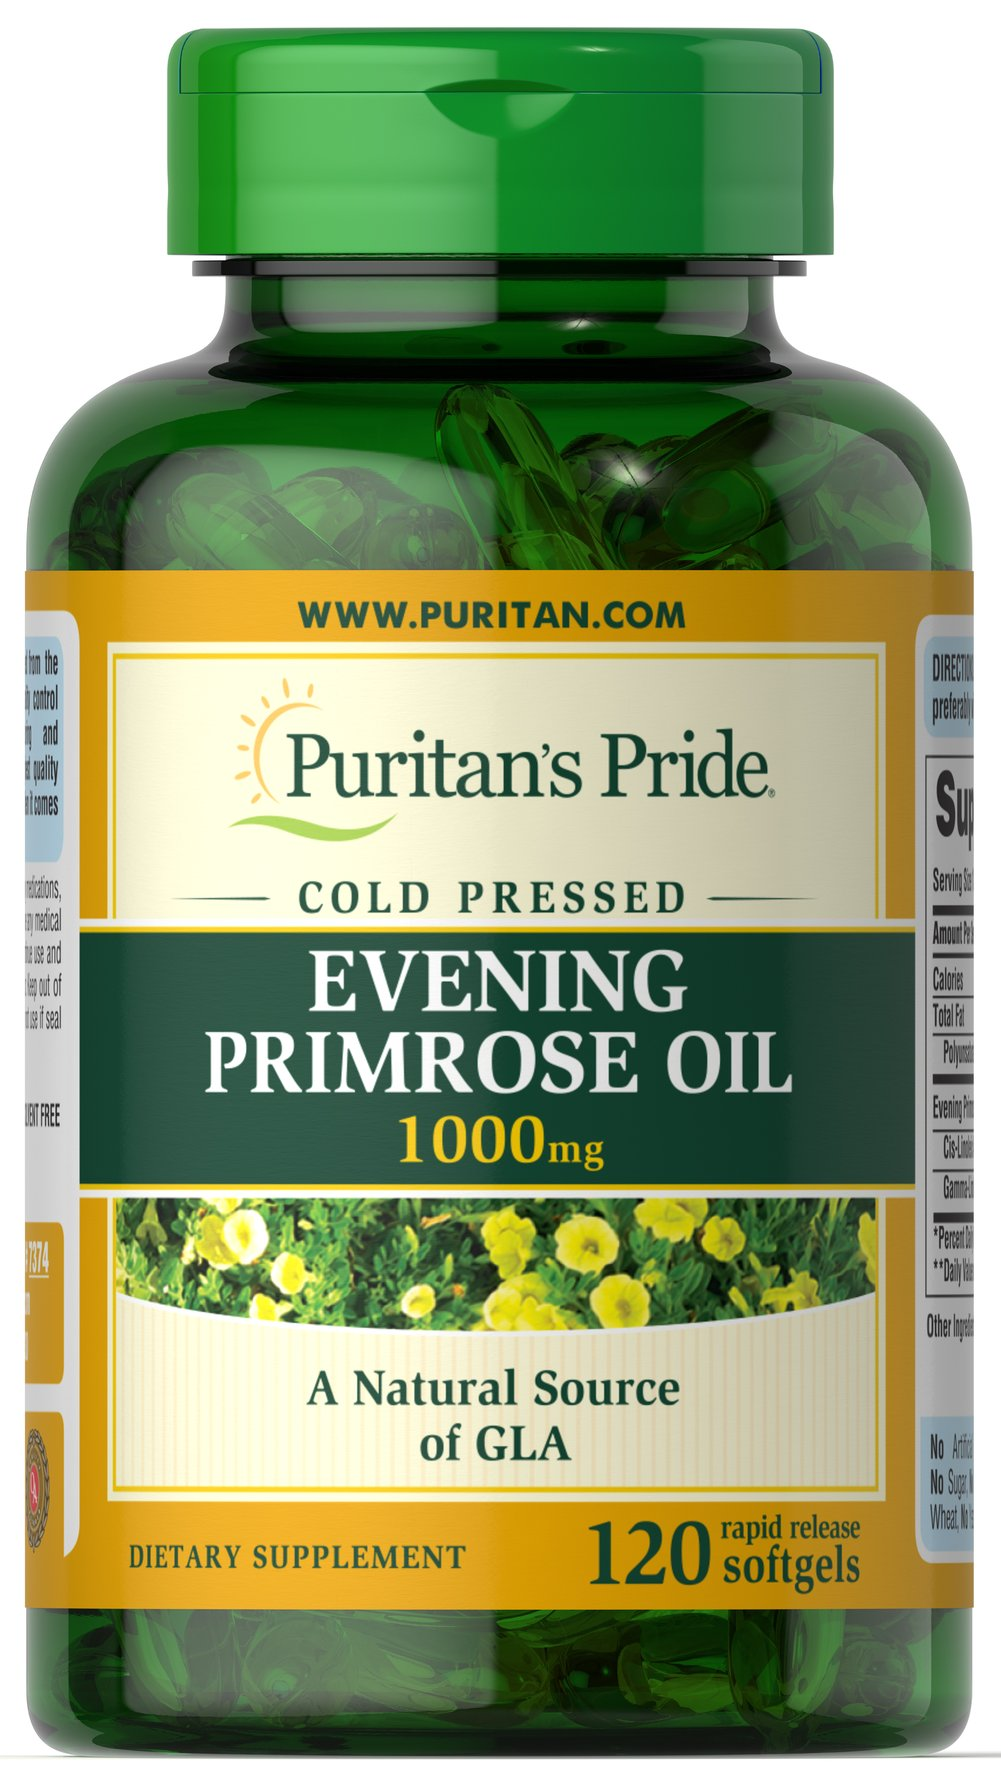 Evening Primrose Oil 1000 mg with GLA  120 Softgels 1000 mg $18.89